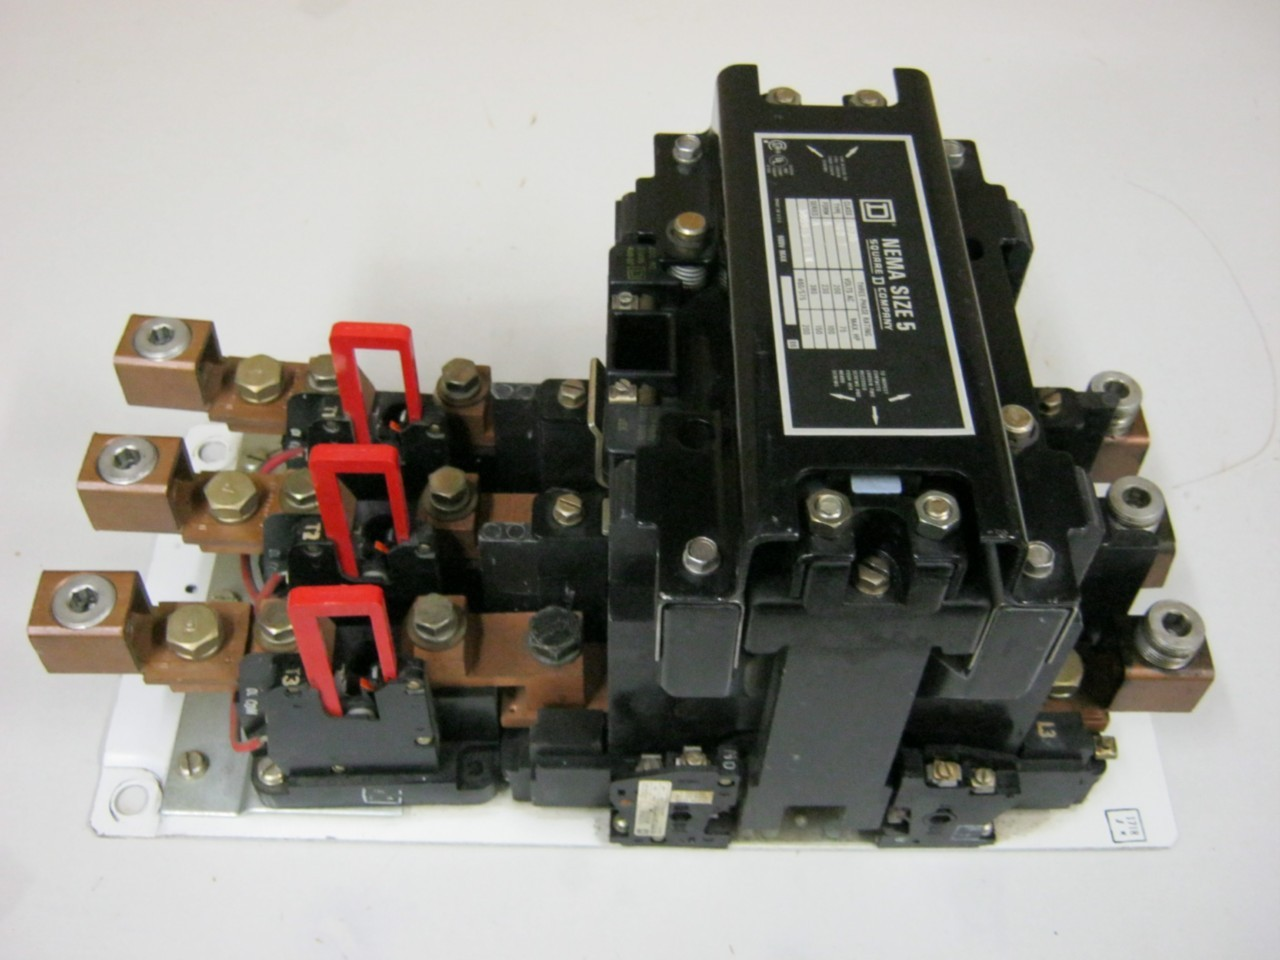 Square D Size 5 Motor Starter Class 8536 Type Sgo 1 Form S